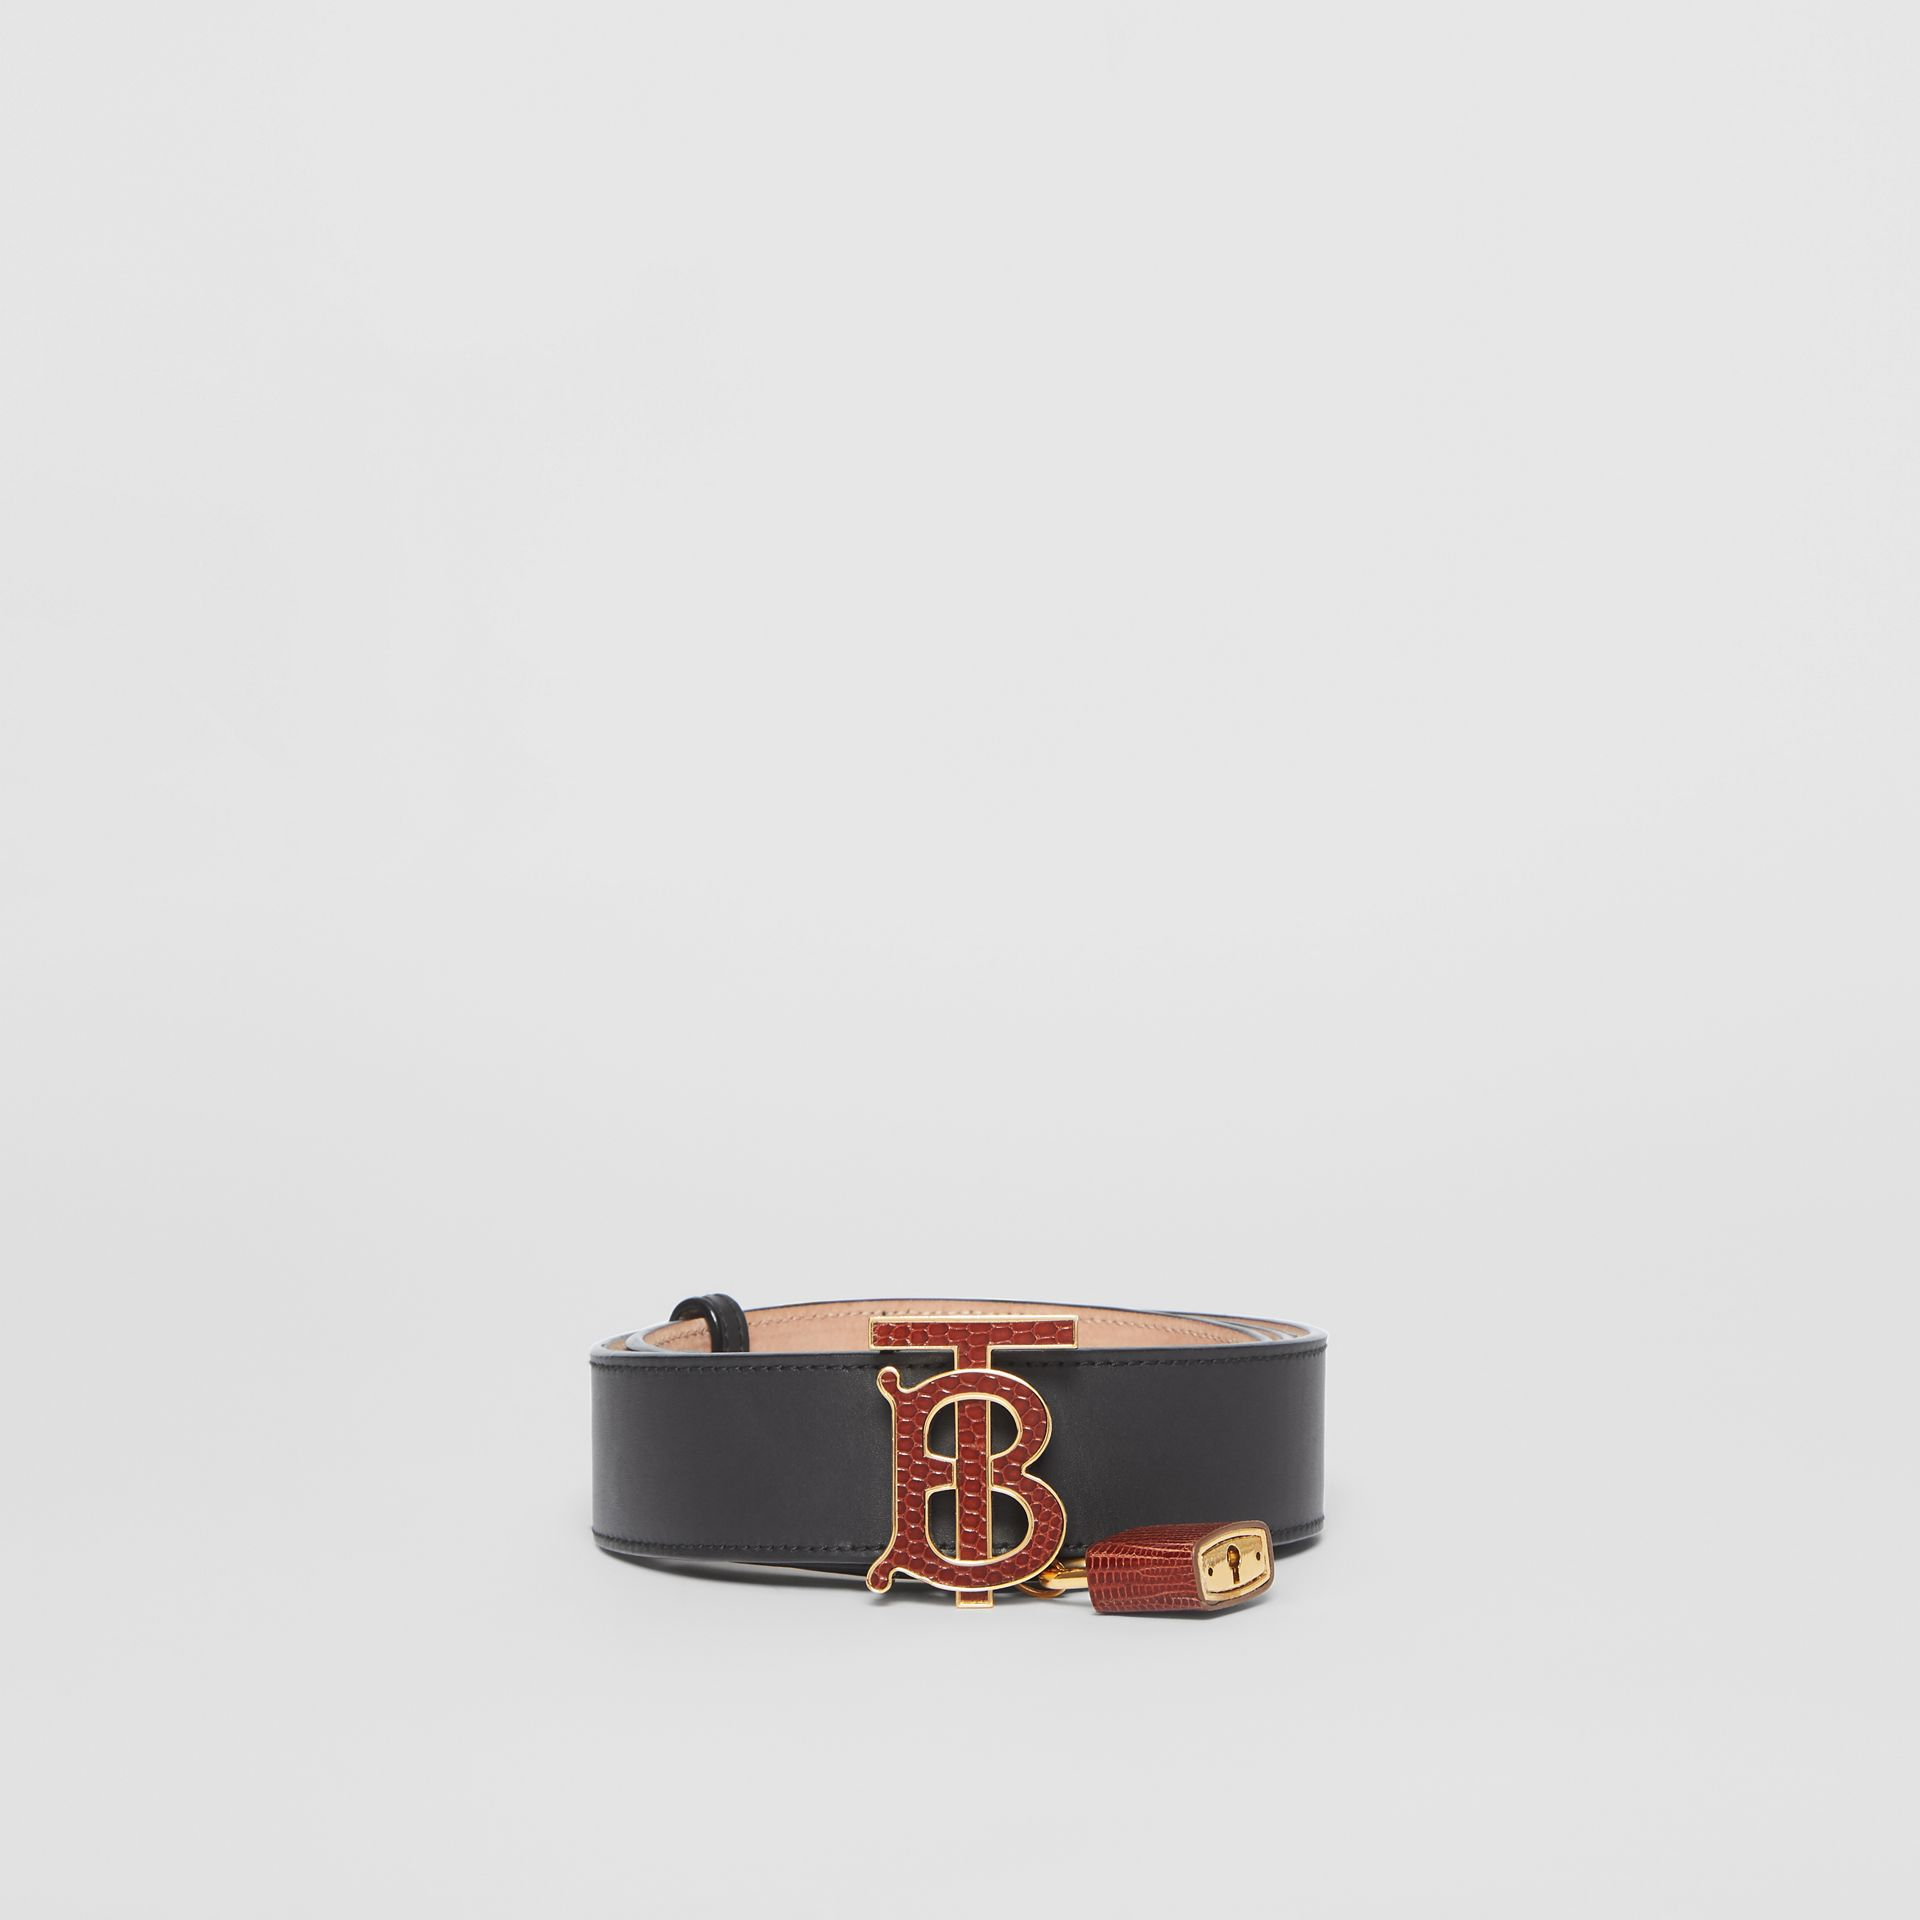 Padlock Detail Monogram Motif Leather Belt in Black/tan - Women | Burberry - gallery image 3